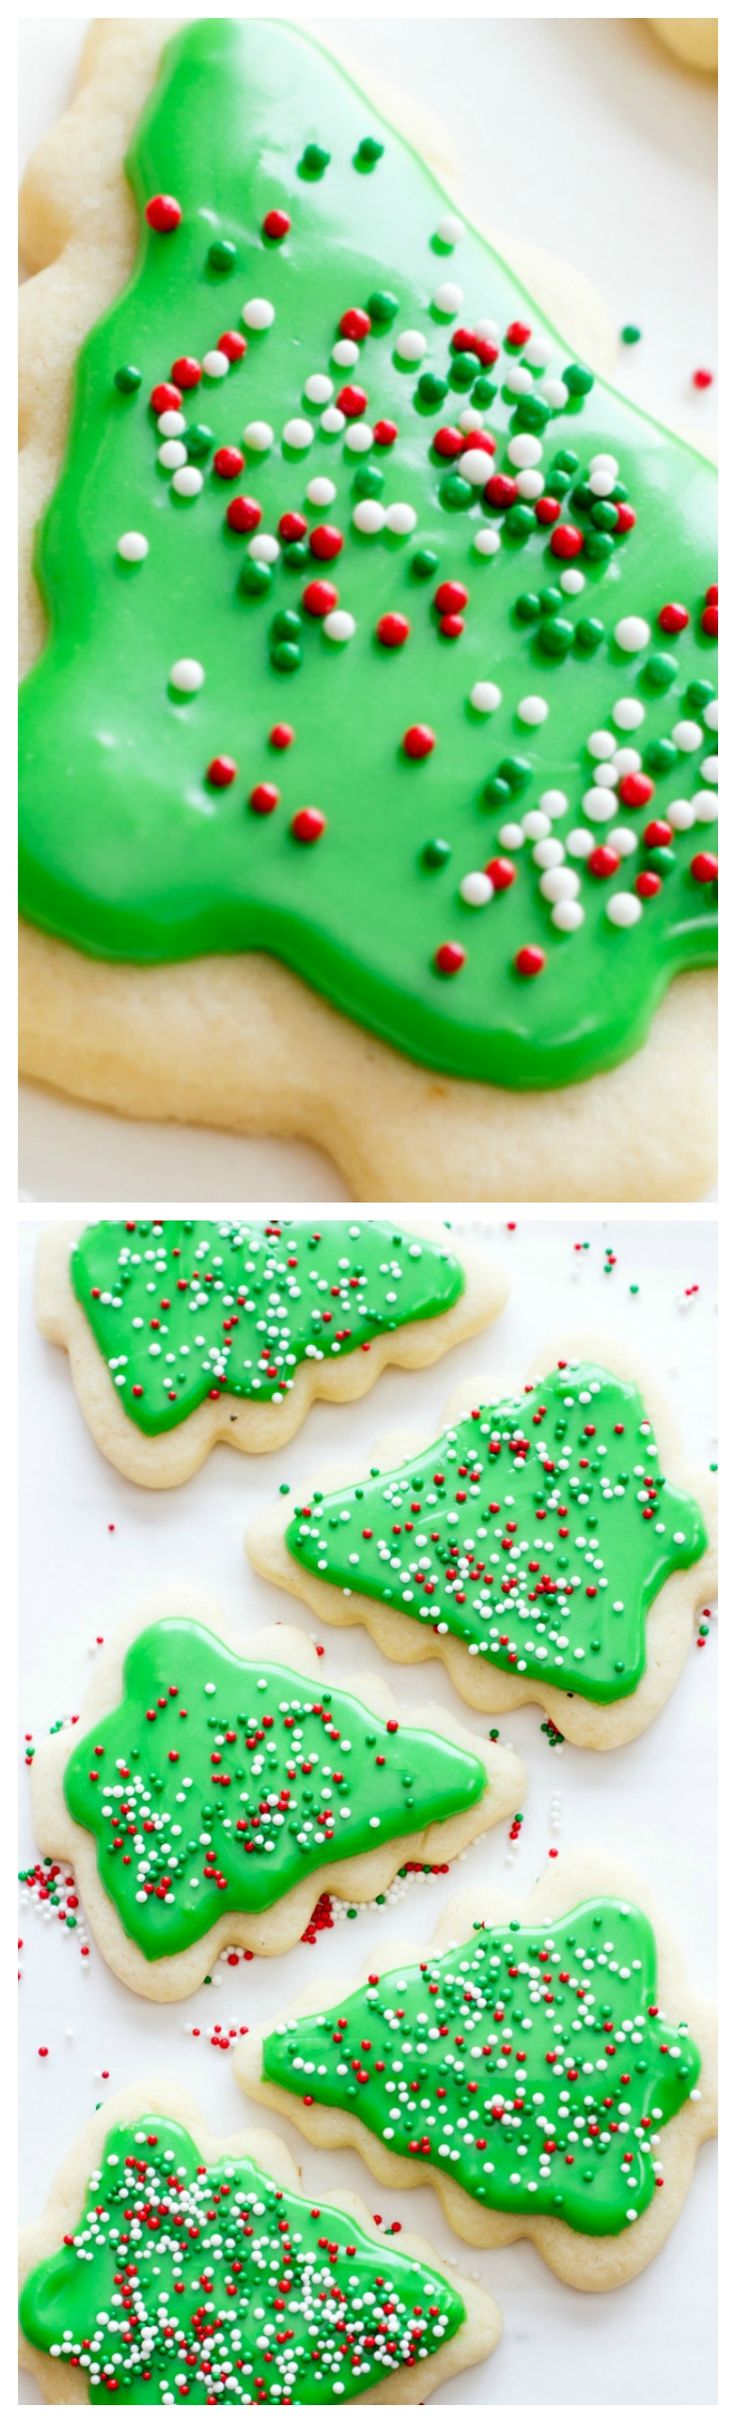 Perfect Frosted Sugar Cookies ~ Looking for the perfect sugar cookie recipe for cutouts? This is it! Delicious, mildly flavored, and they don't spread in the oven!